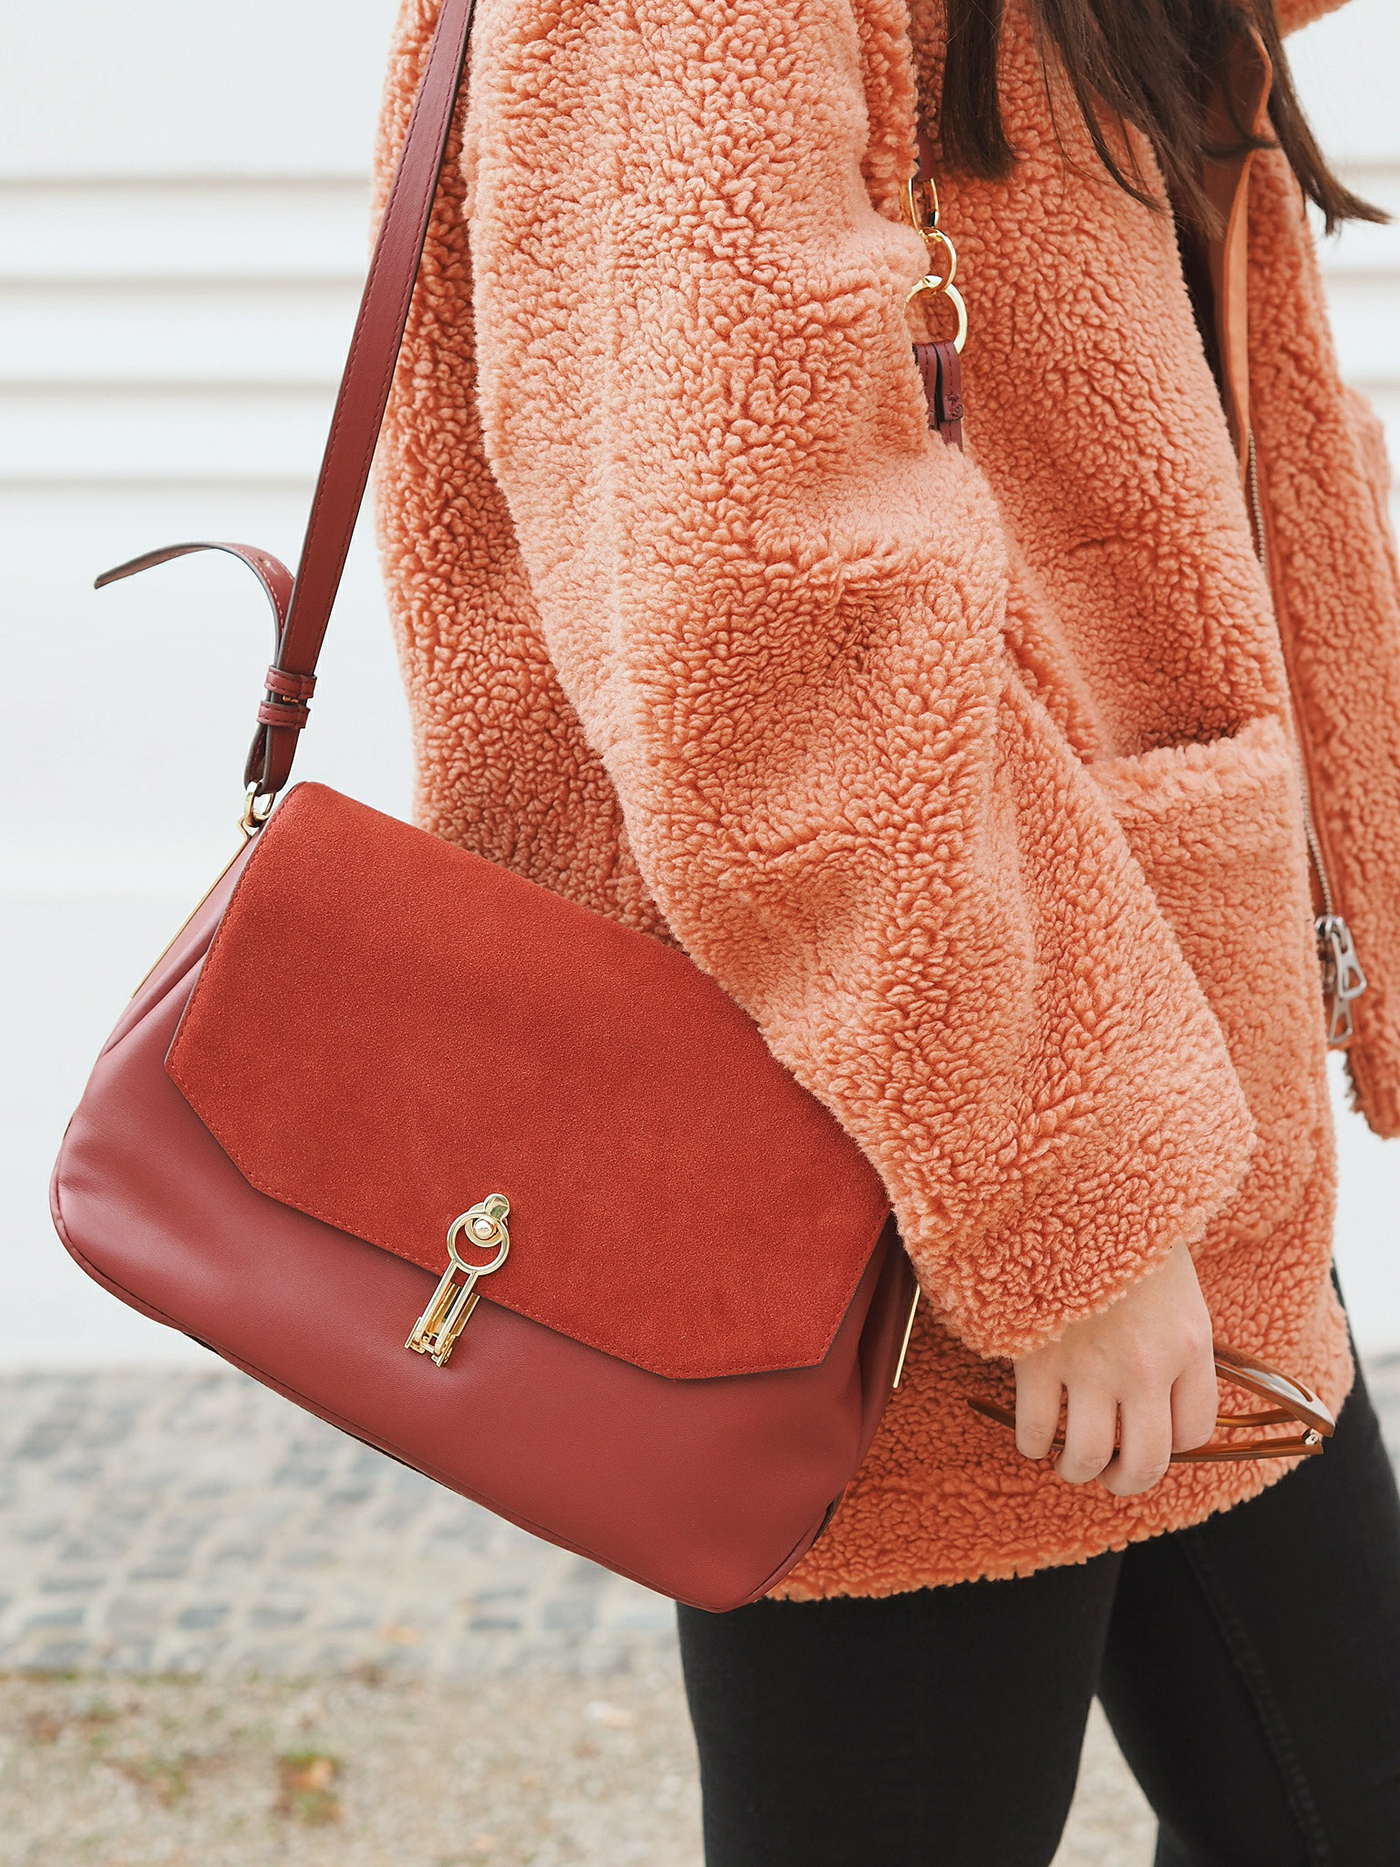 orange-teddy-coat-weekday-outfit-julia-carevic